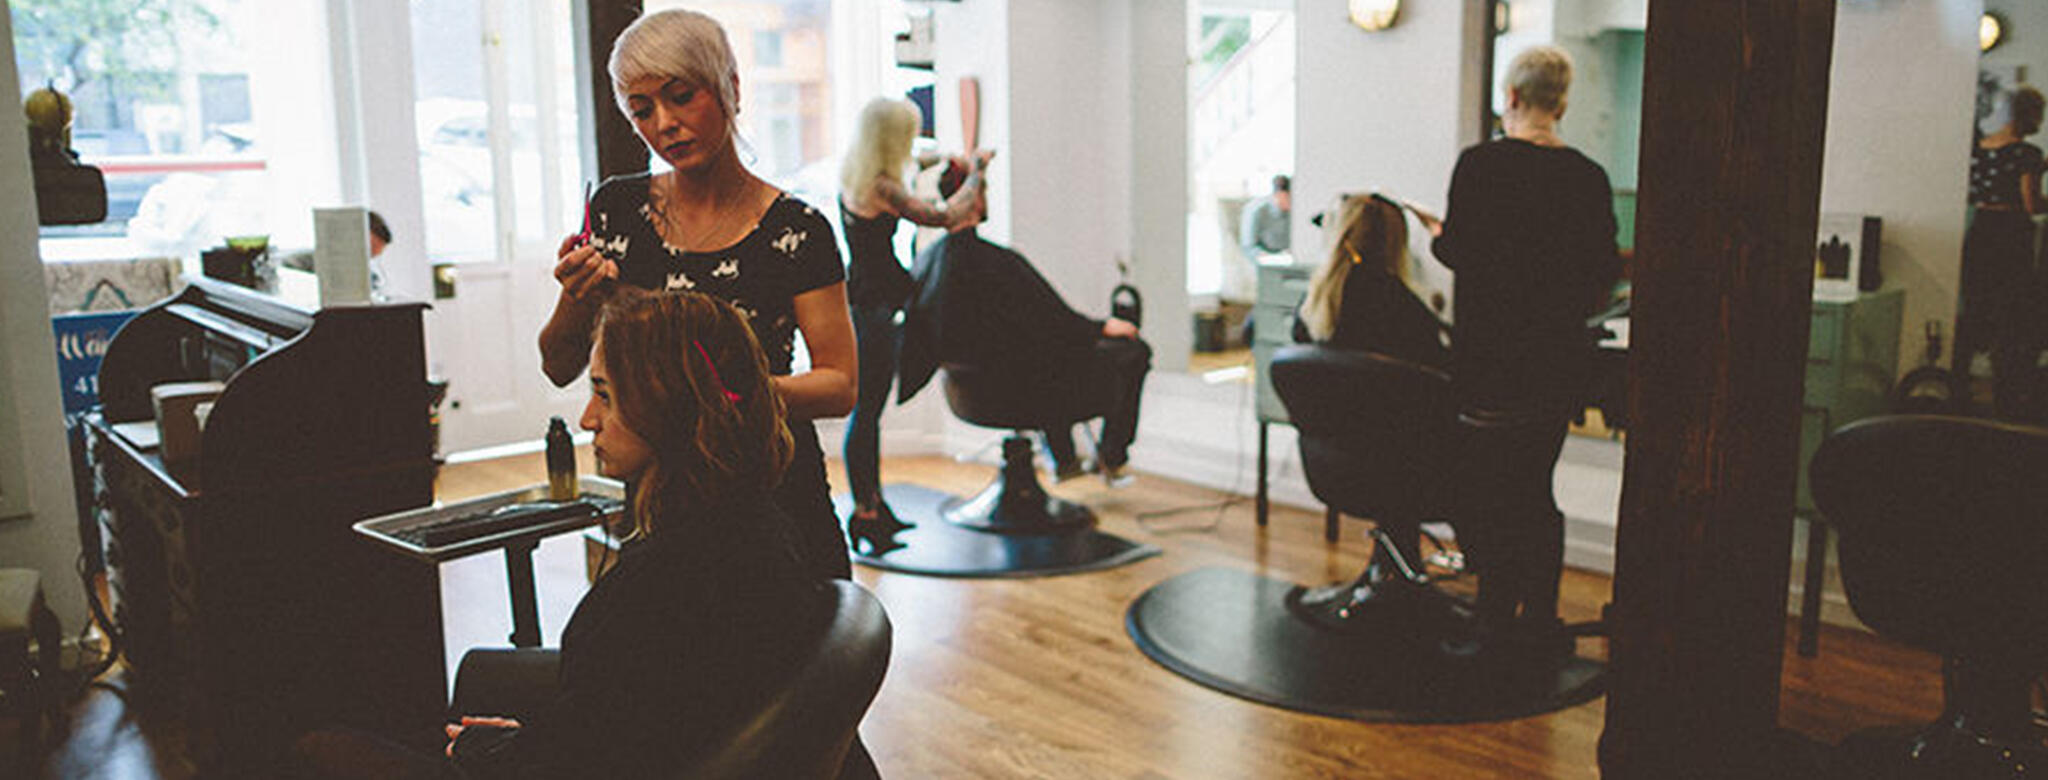 woman getting hair done by stylist in salon